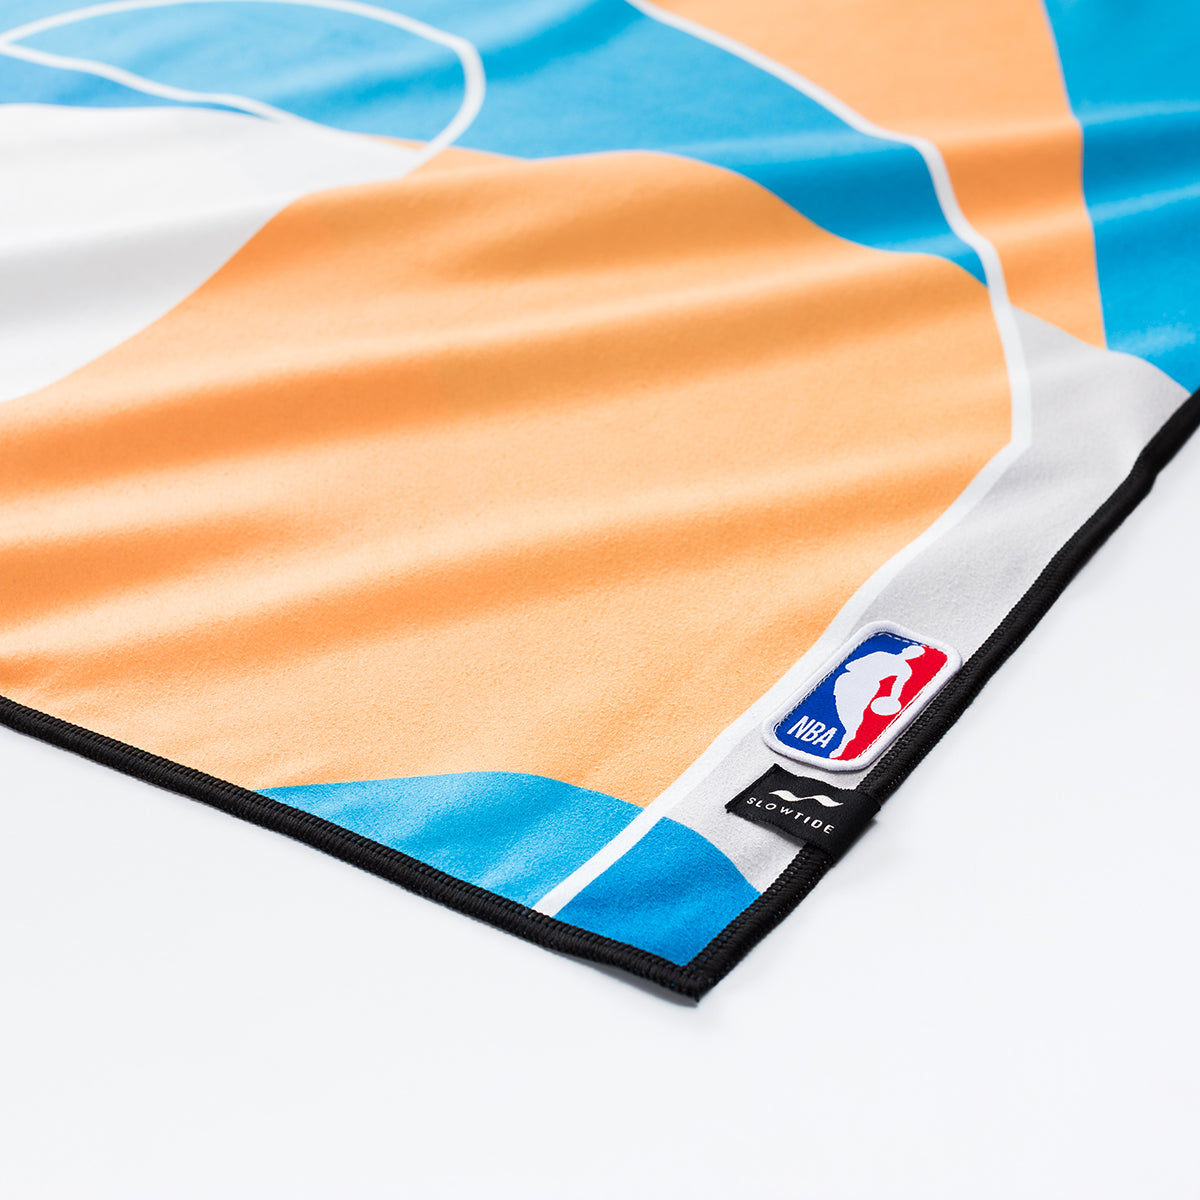 Knicks Court Camo Quick-Dry Towel - Slowtide